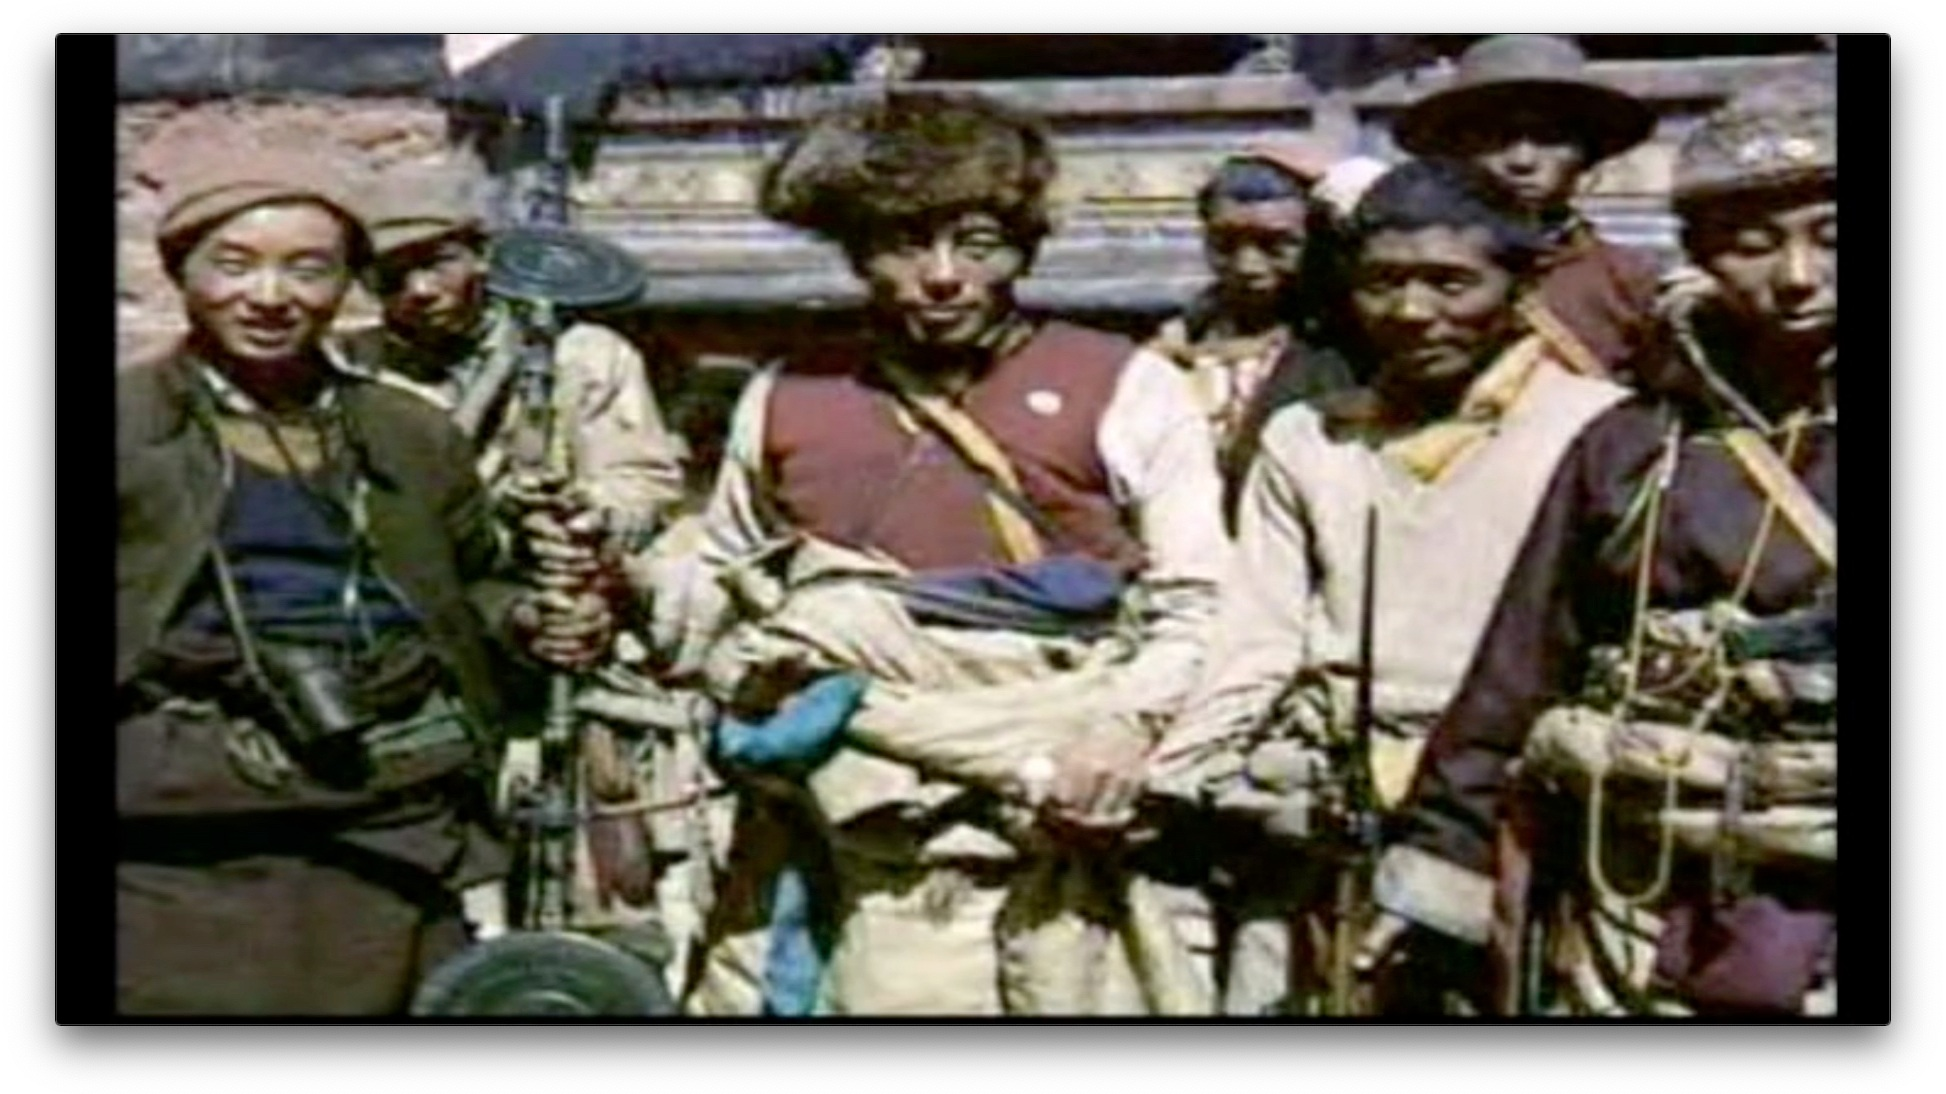 Tibetan guerrillas in Exile Kalsang Rinchen   2008   India   30'   Documentary   Tibetan with English Subtitles Screenplay: Kalsang Rinchen Actors: various    Trailer    Tibetan resistance to the Chinese occupation is associated with the Dalai Lama, Buddhism and non-violence. But there was also a Tibetan guerilla army. Their formation took place within the Indian military and with the support of the CIA. In 1964 it was moved to the Indo-Tibetan border area and they waited for years in vain for orders to attack. Contemporary witnesses tell impressively of their experiences.